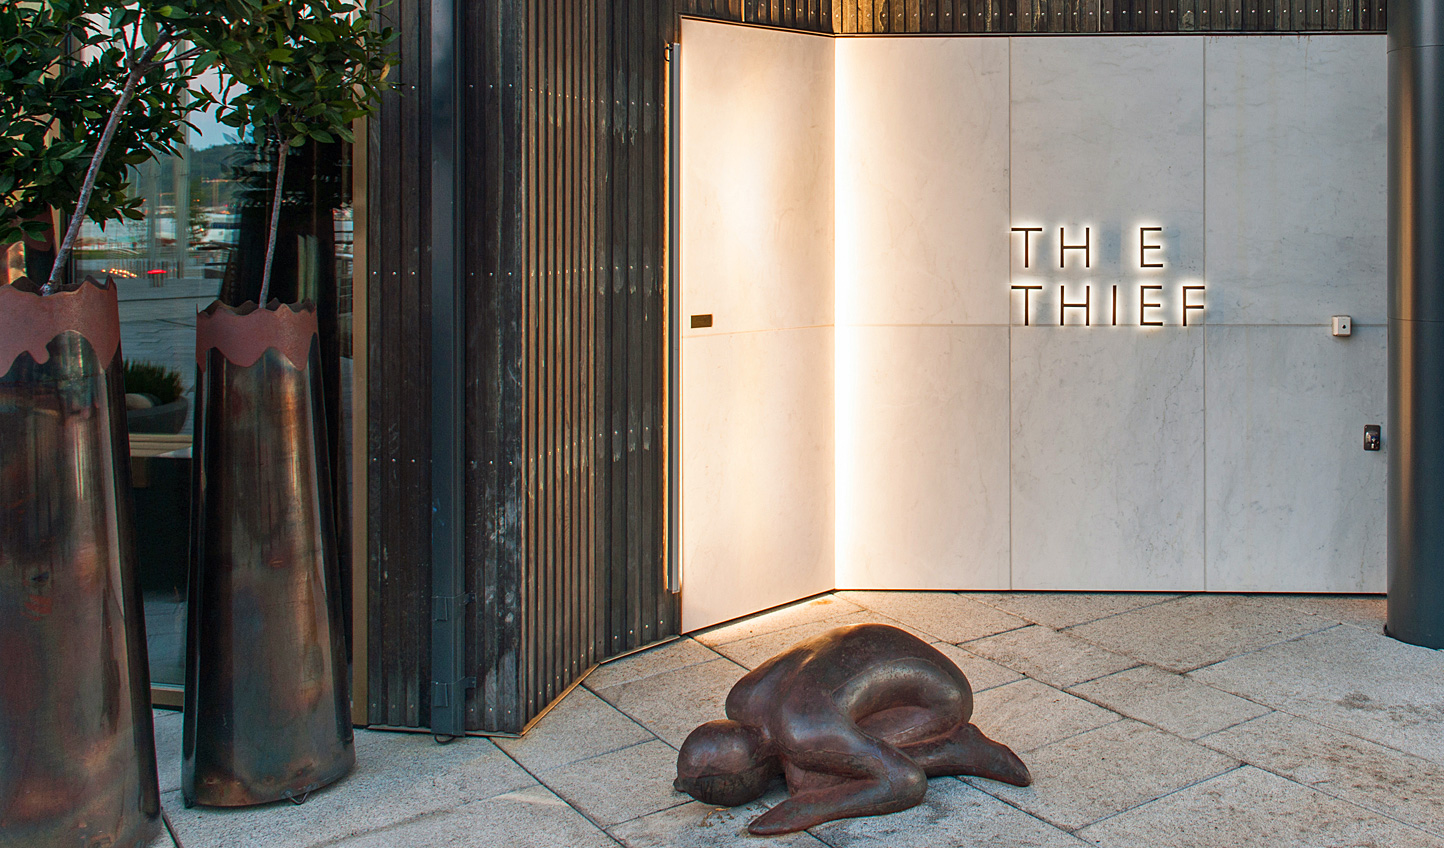 Step into The Thief and discover a home to modern art and beautiful spaces